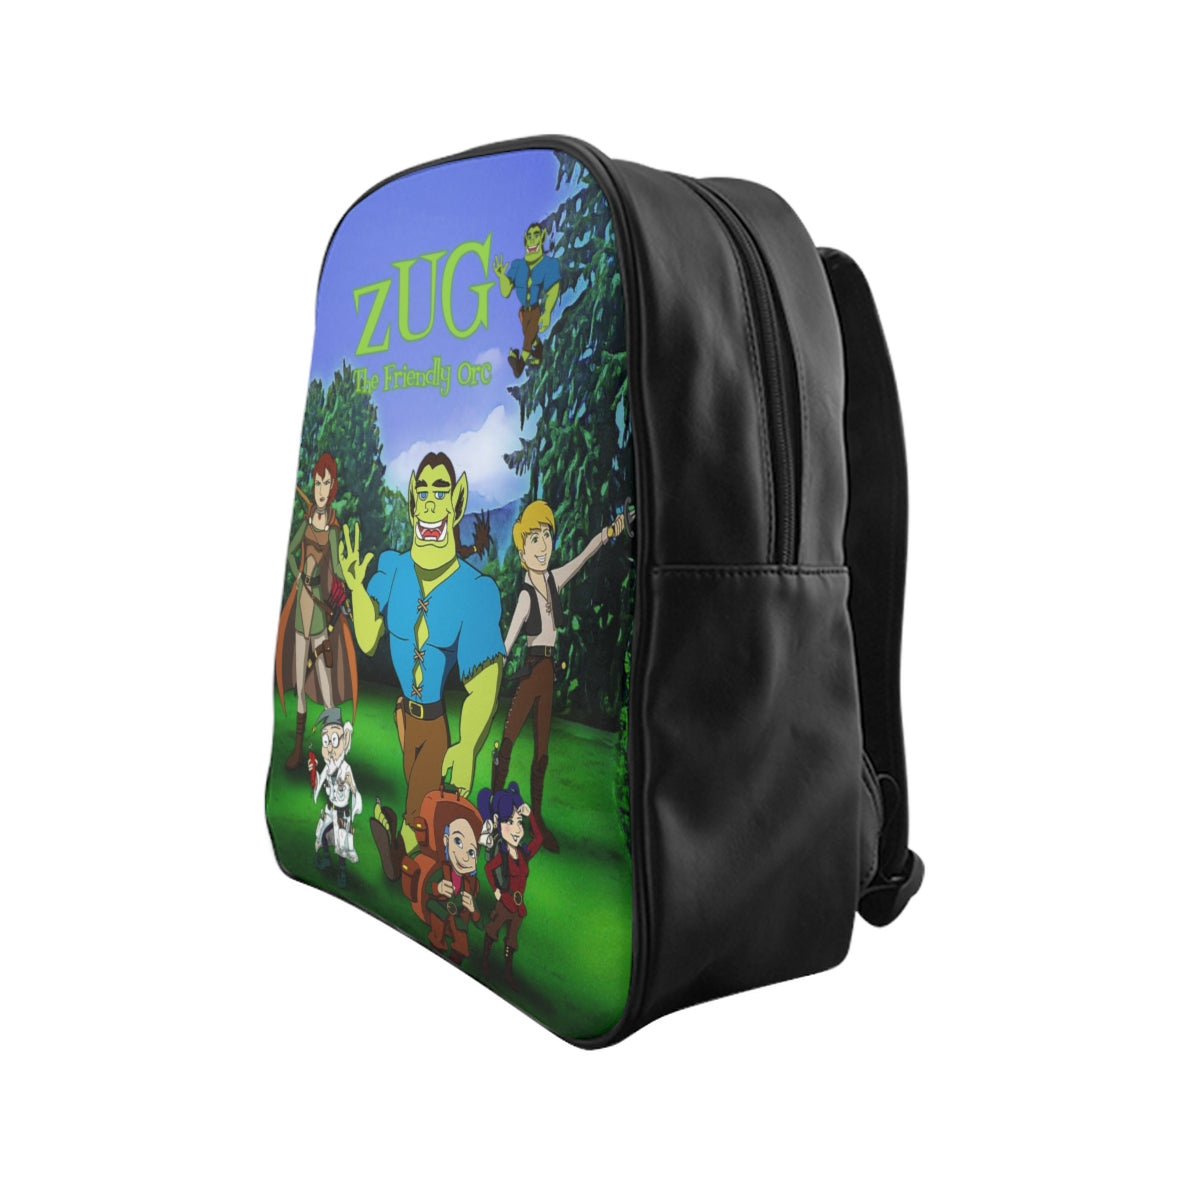 ZUG and friends KIDS Backpack!